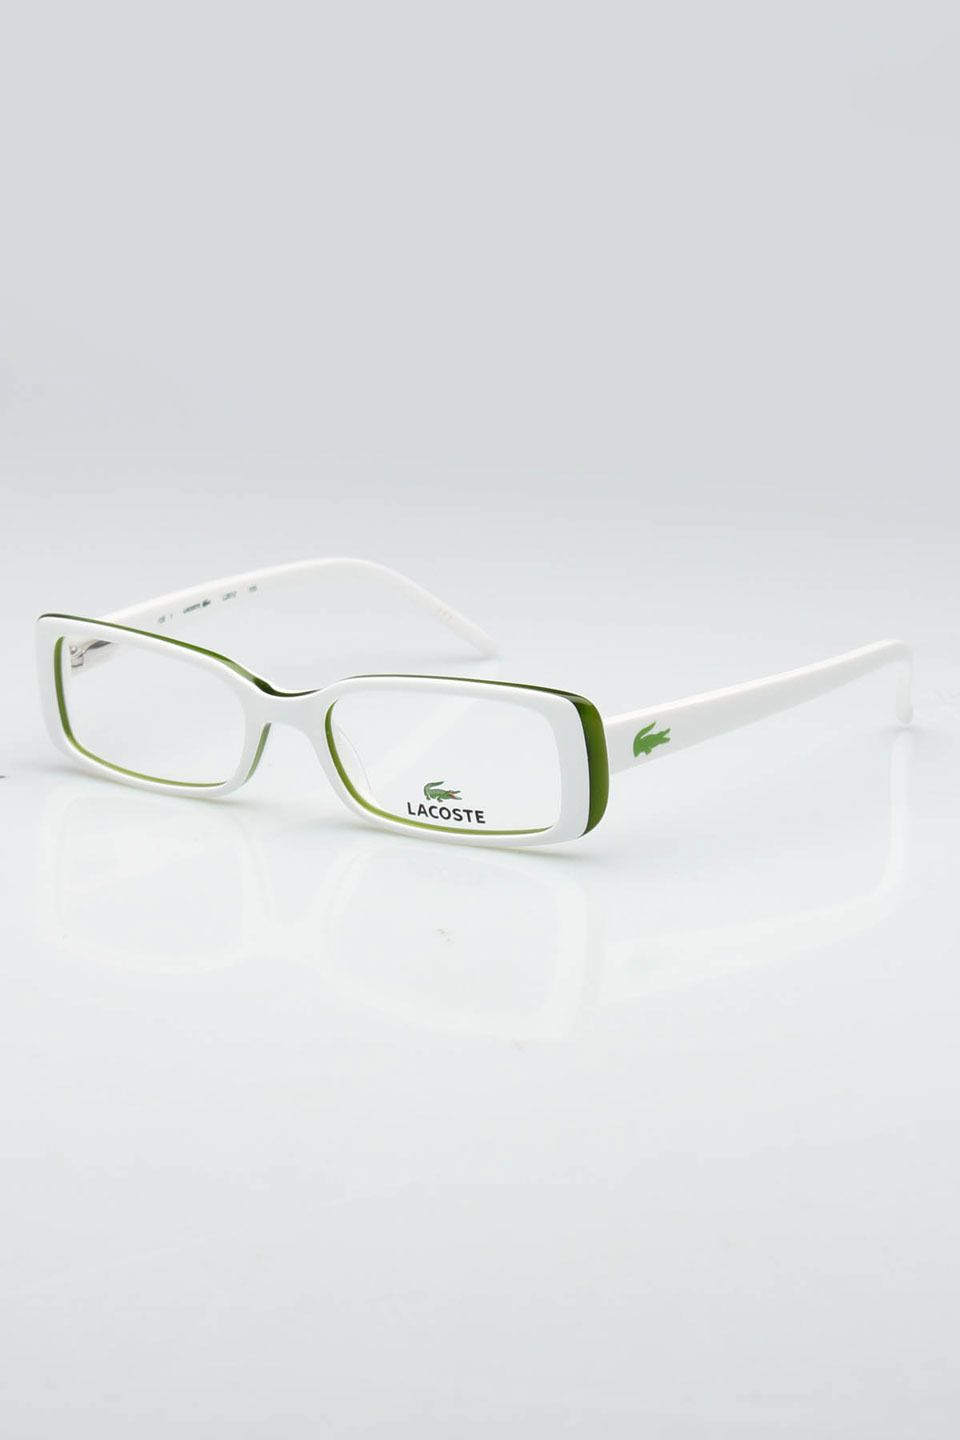 Lacoste Unisex Venice Glasses In White - Beyond the Rack   I ... ff36d3a4d2